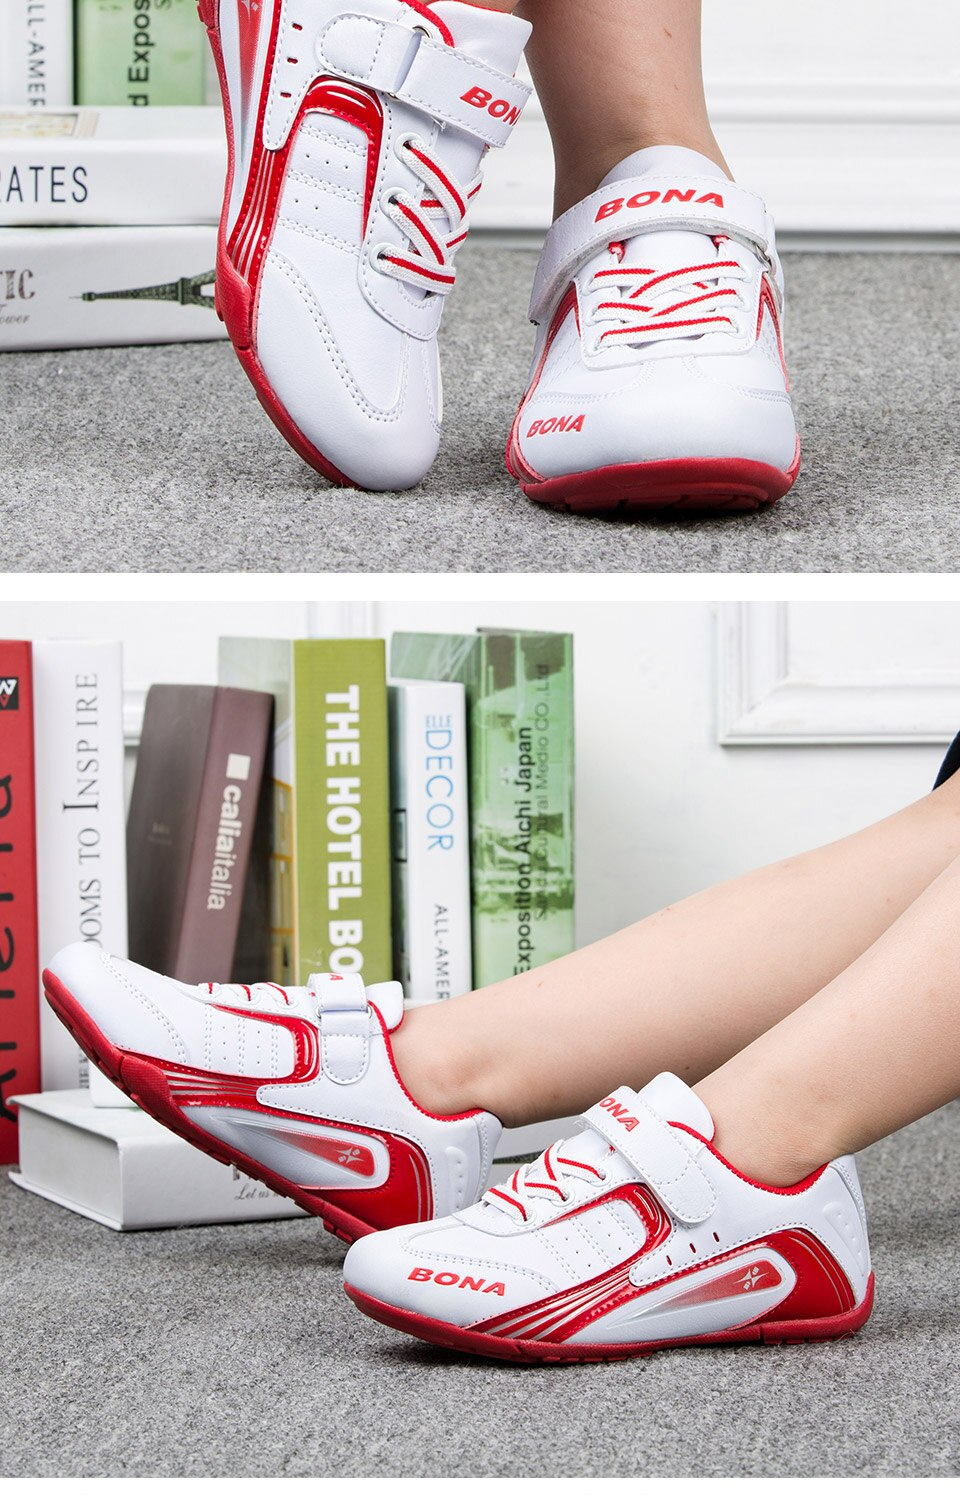 BONA New Hot Style Children Casual Shoes Outdoor Jogging Boys Shoes Hook & Loop Kids Sneakers Light Soft Free Shpping